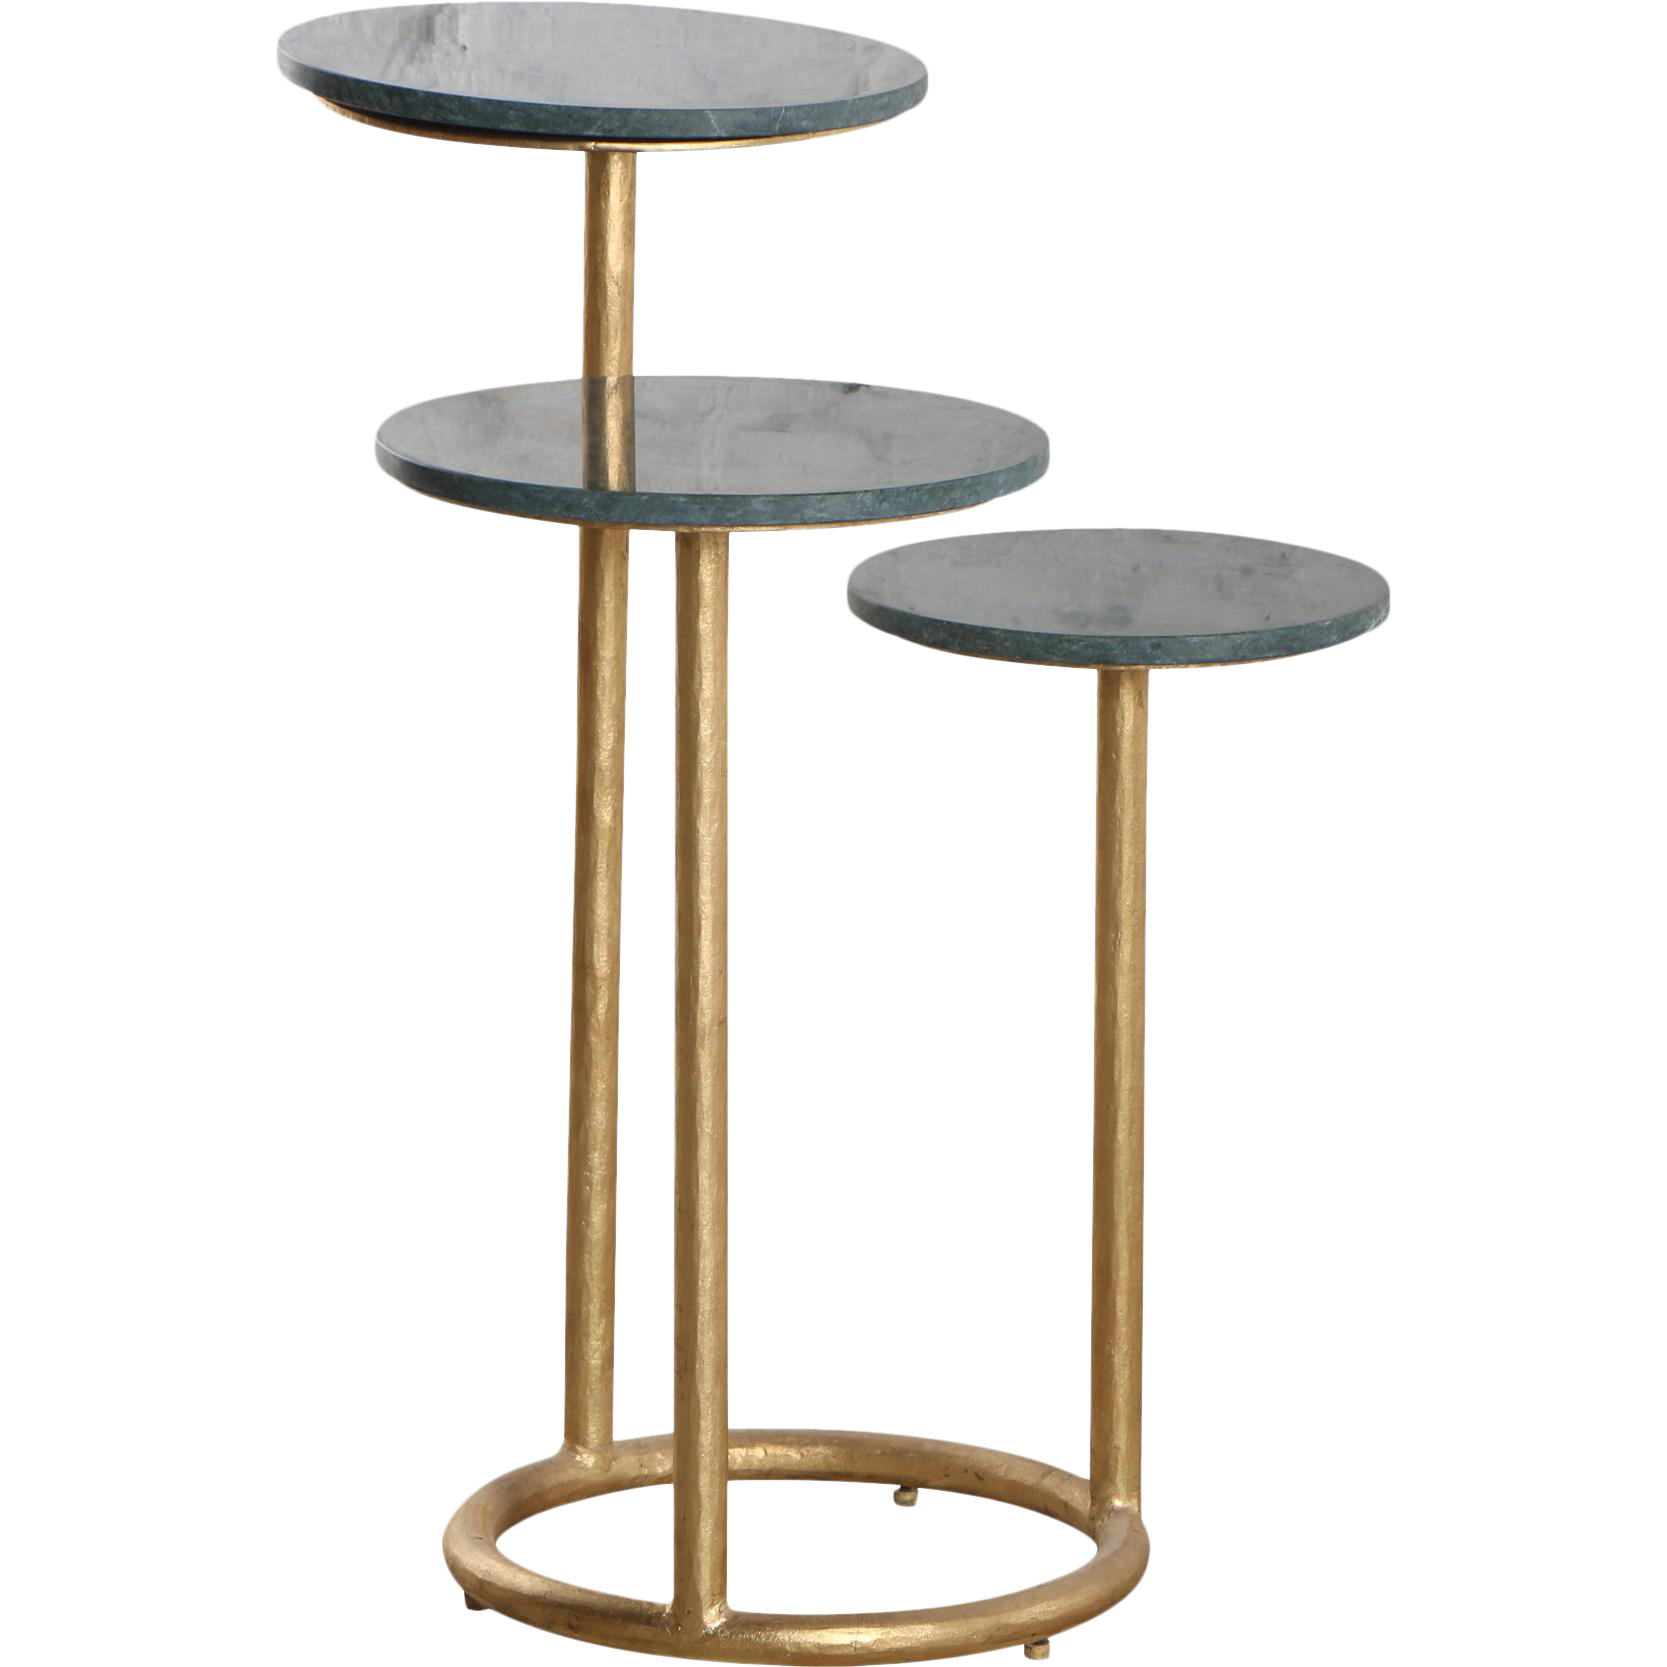 mid century modern marble trio accent table chairish target dinosaur bedding outdoor bar stools tan plastic covers metal drum patio bench velvet furniture antique serving pink